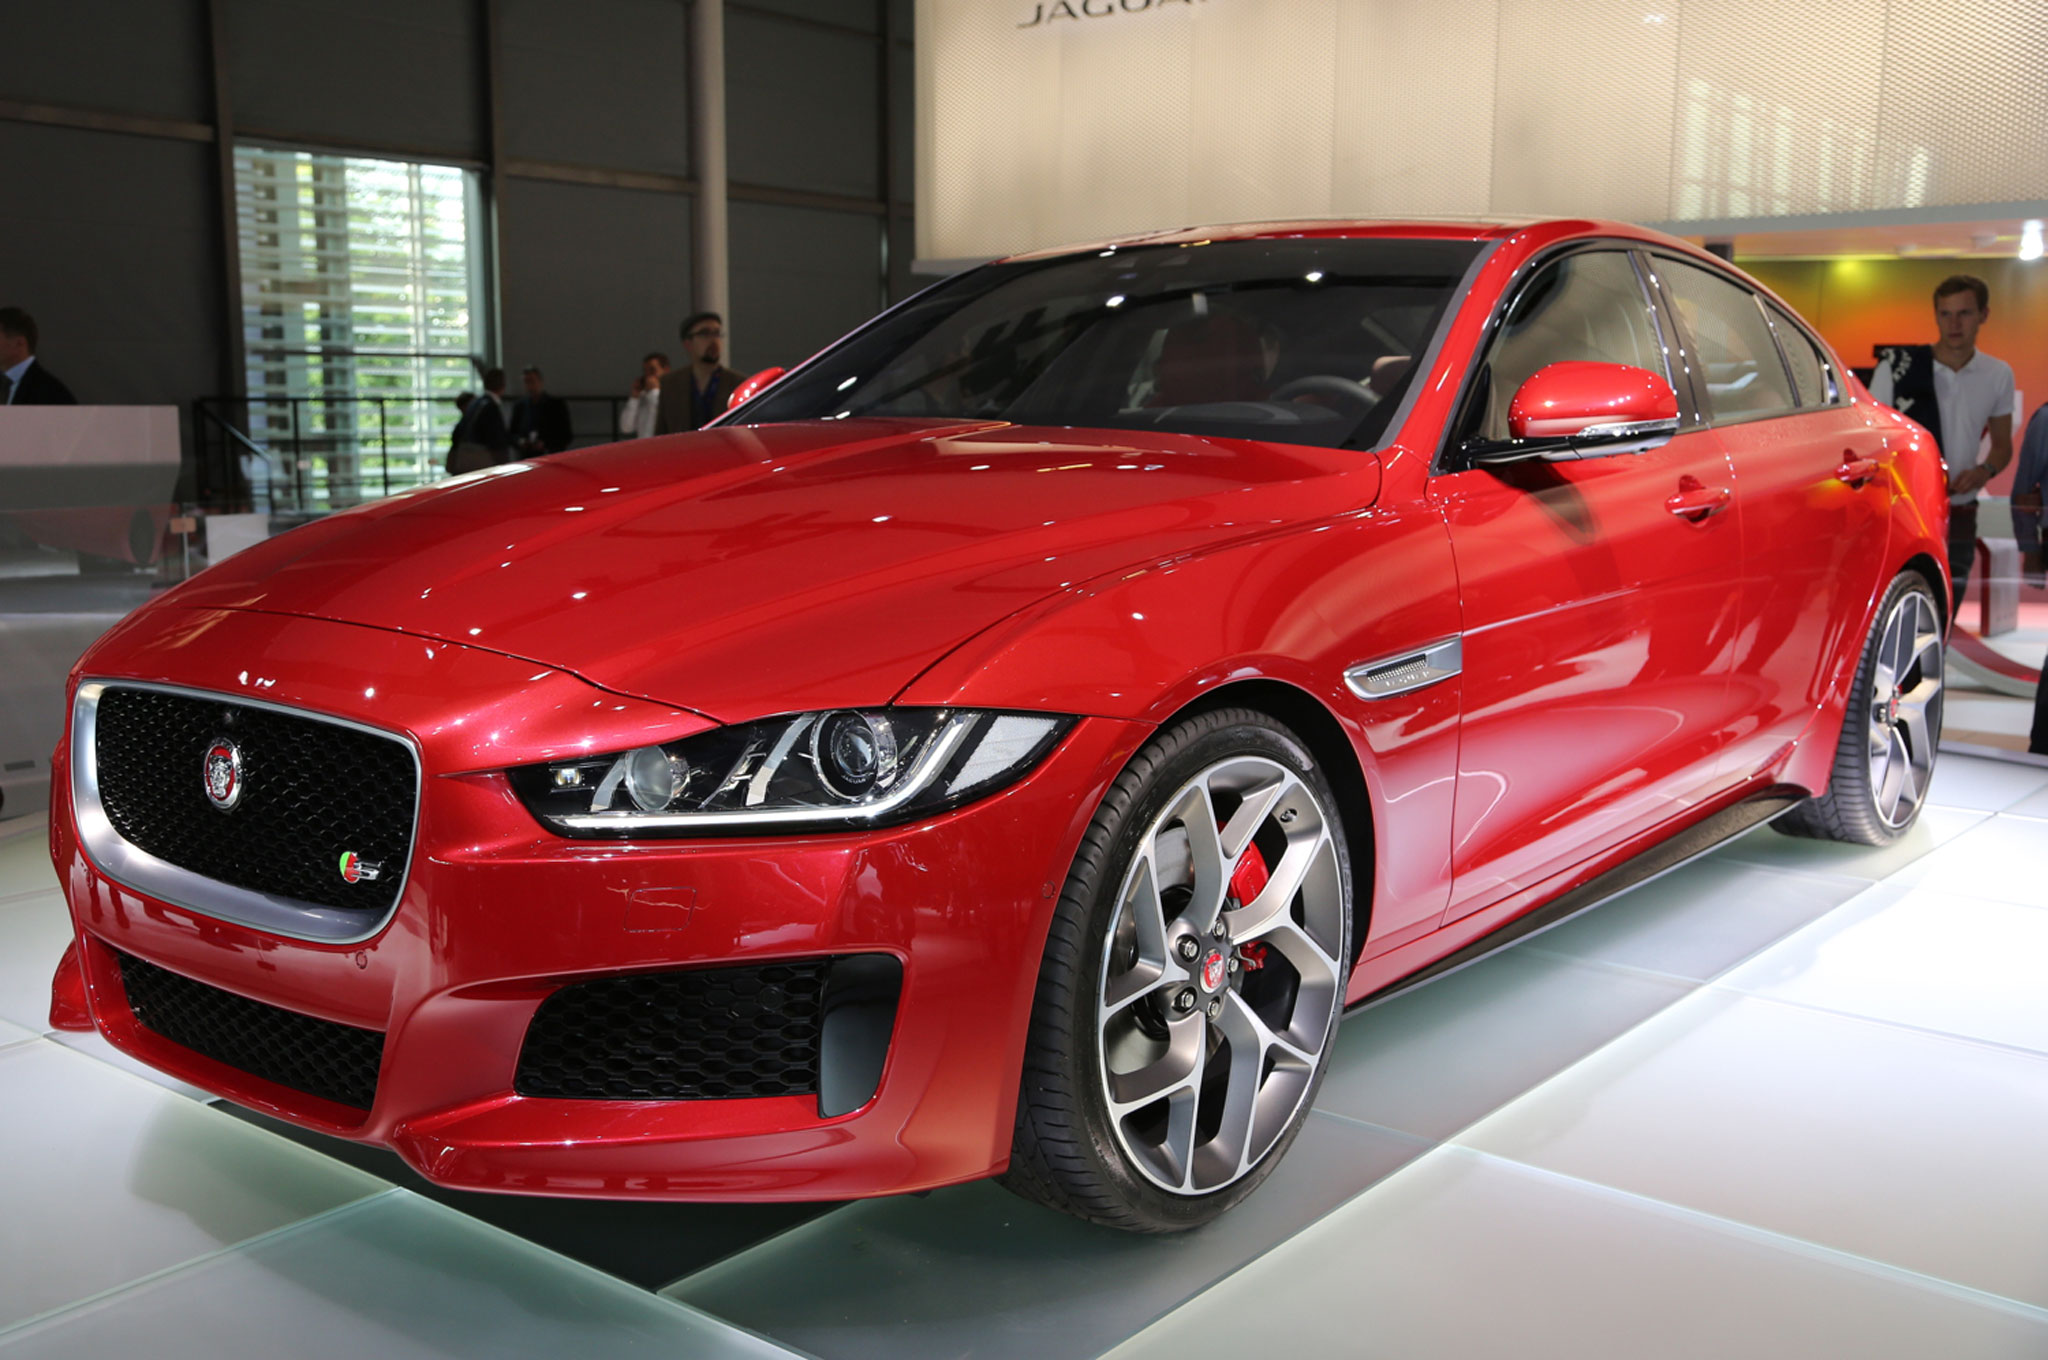 2016 Jaguar Xe Hd Photo (Photo 7 of 12)